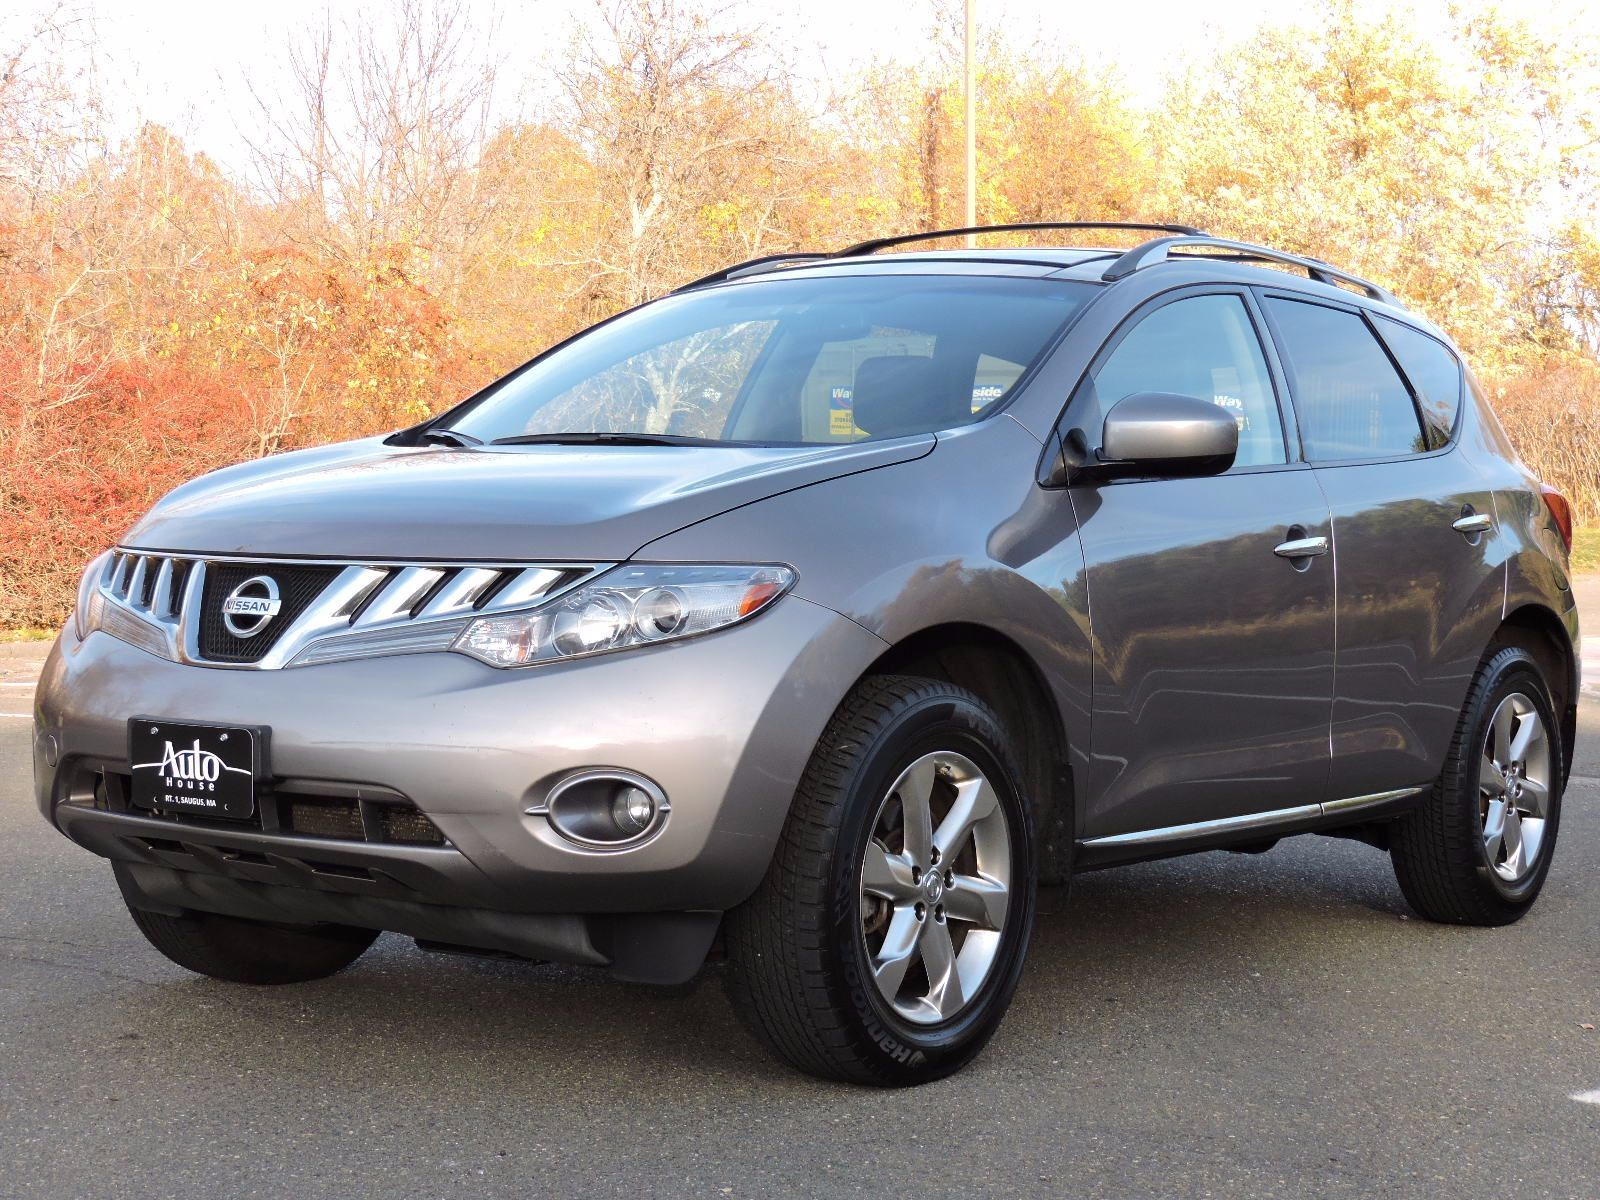 2014 nissan murano le for sale cargurus autos post. Black Bedroom Furniture Sets. Home Design Ideas